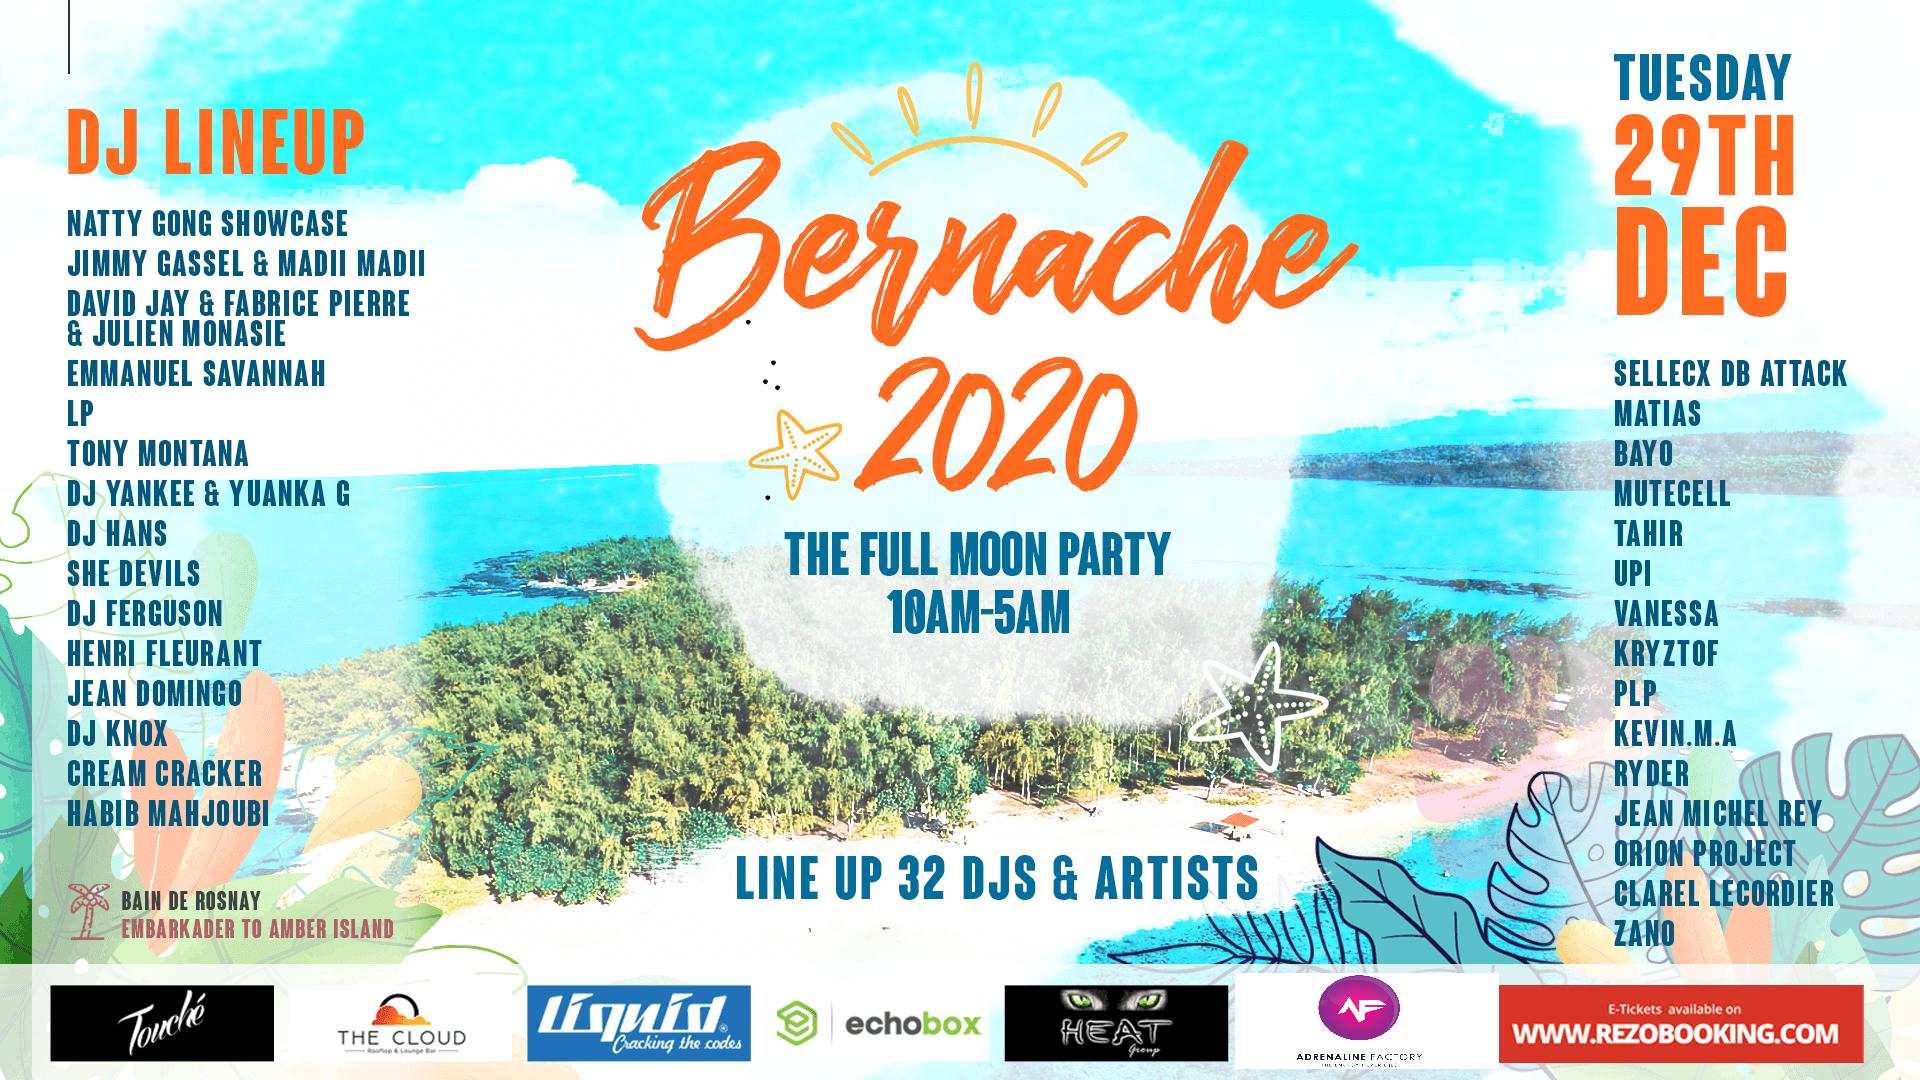 The-Full-Moon-Party-Rezobooking_V5